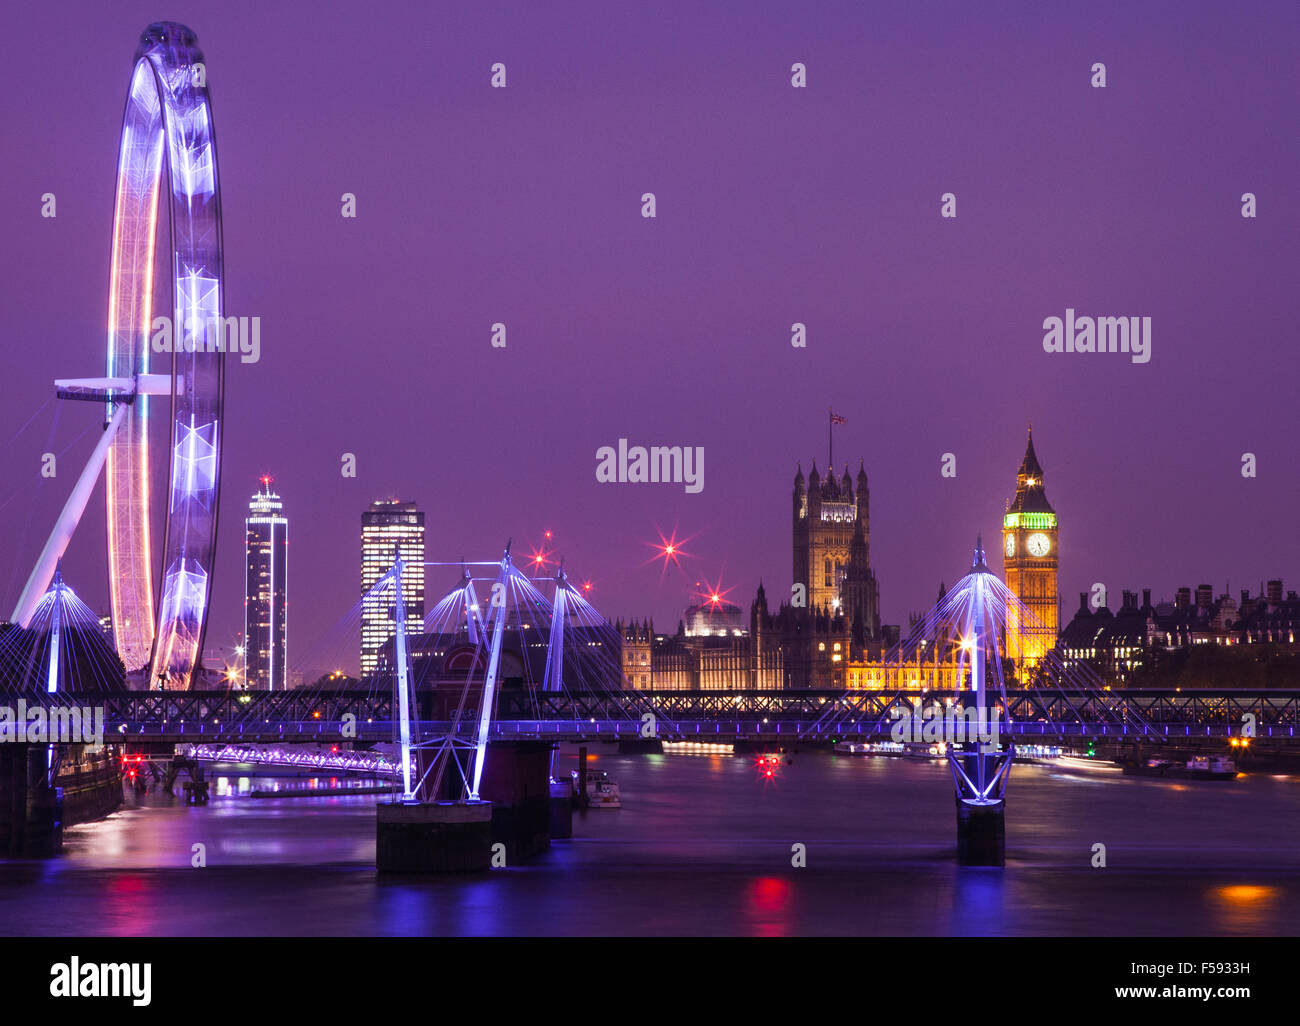 An evening view of London taking in the sights of the Houses of Parliament, the London Eye and the River Thames. - Stock Image